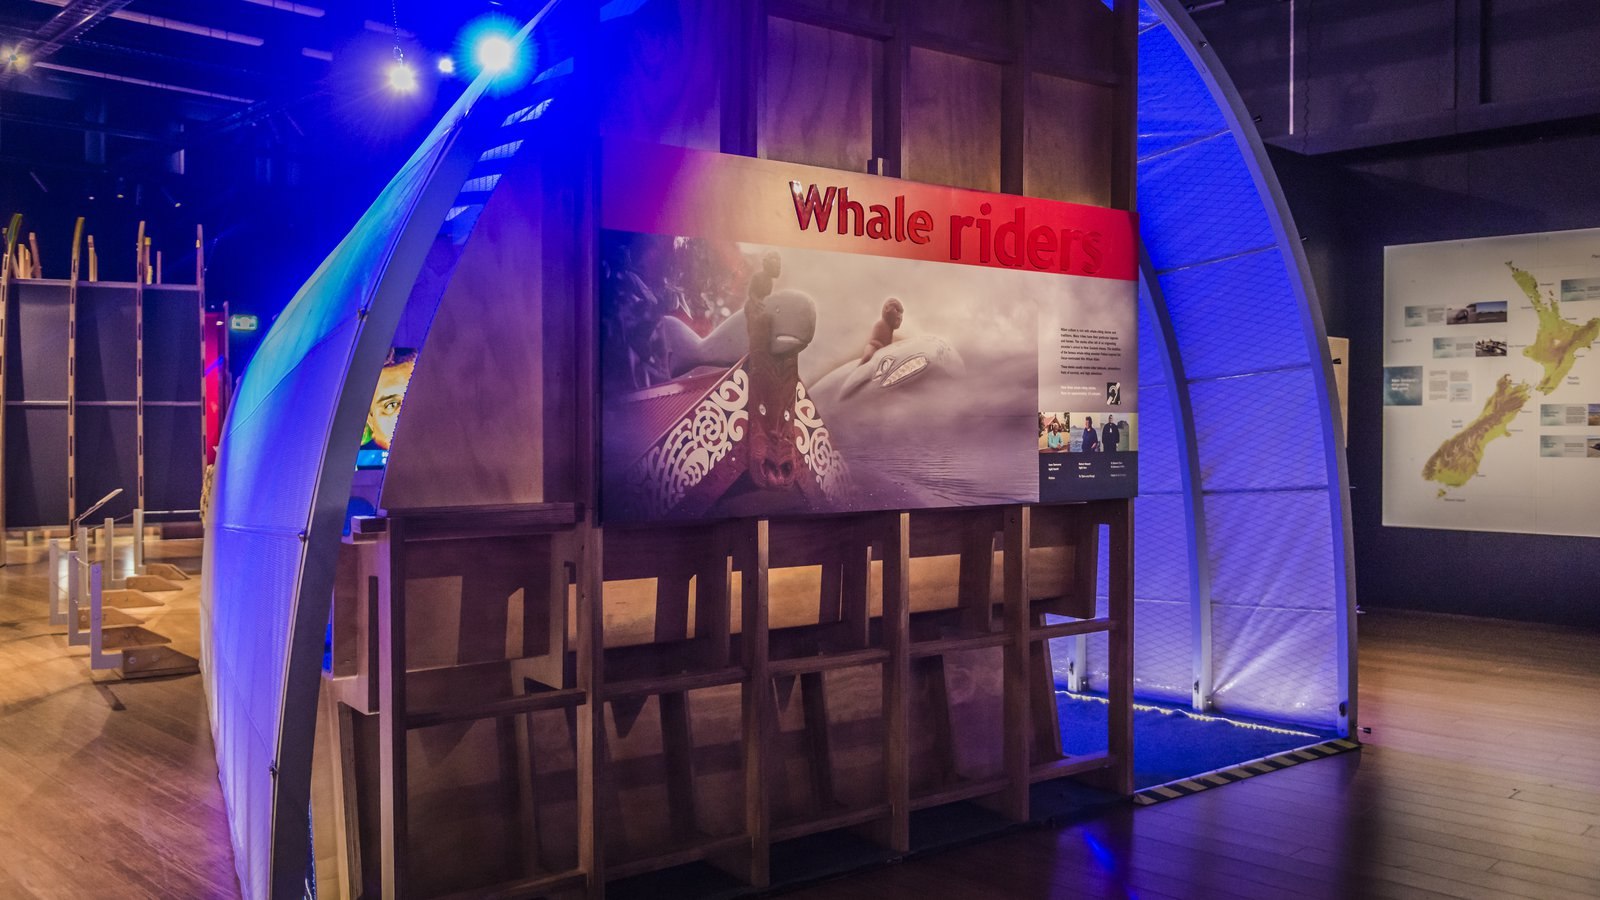 Whale riders theatre in Whales | Tohorā